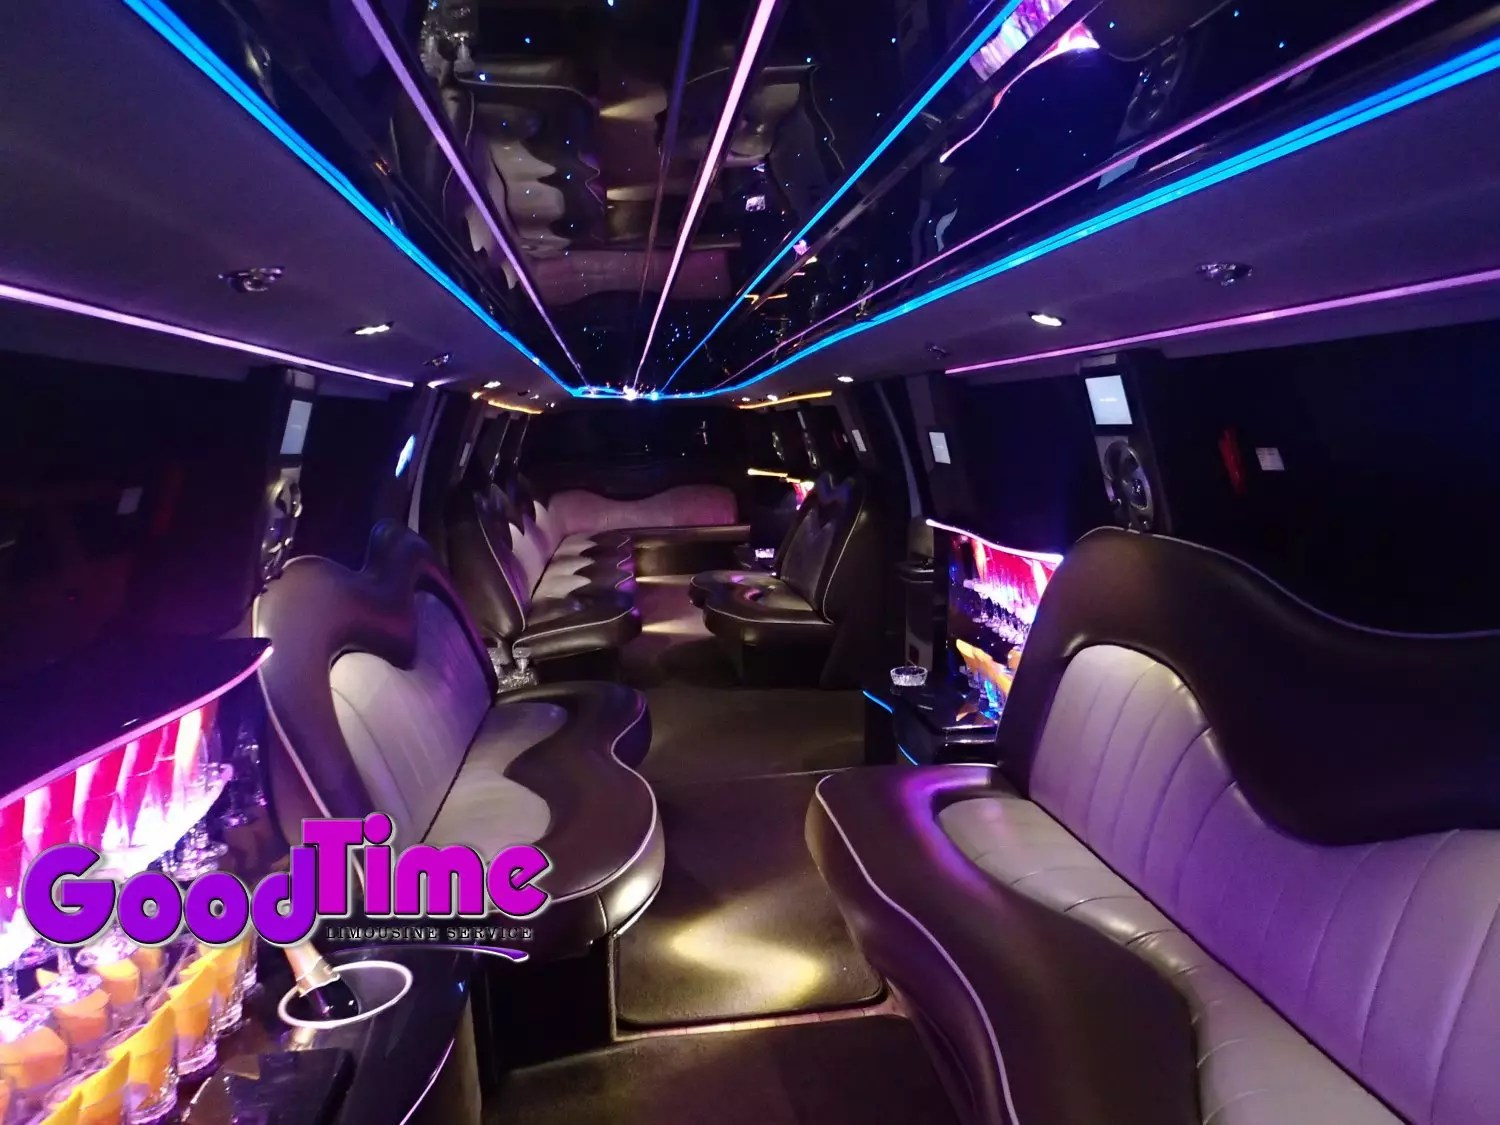 Ford F650 SUV Stretch Limo Hummer Killer 30 passengers int 1 1 LIMO RENTAL FLEET